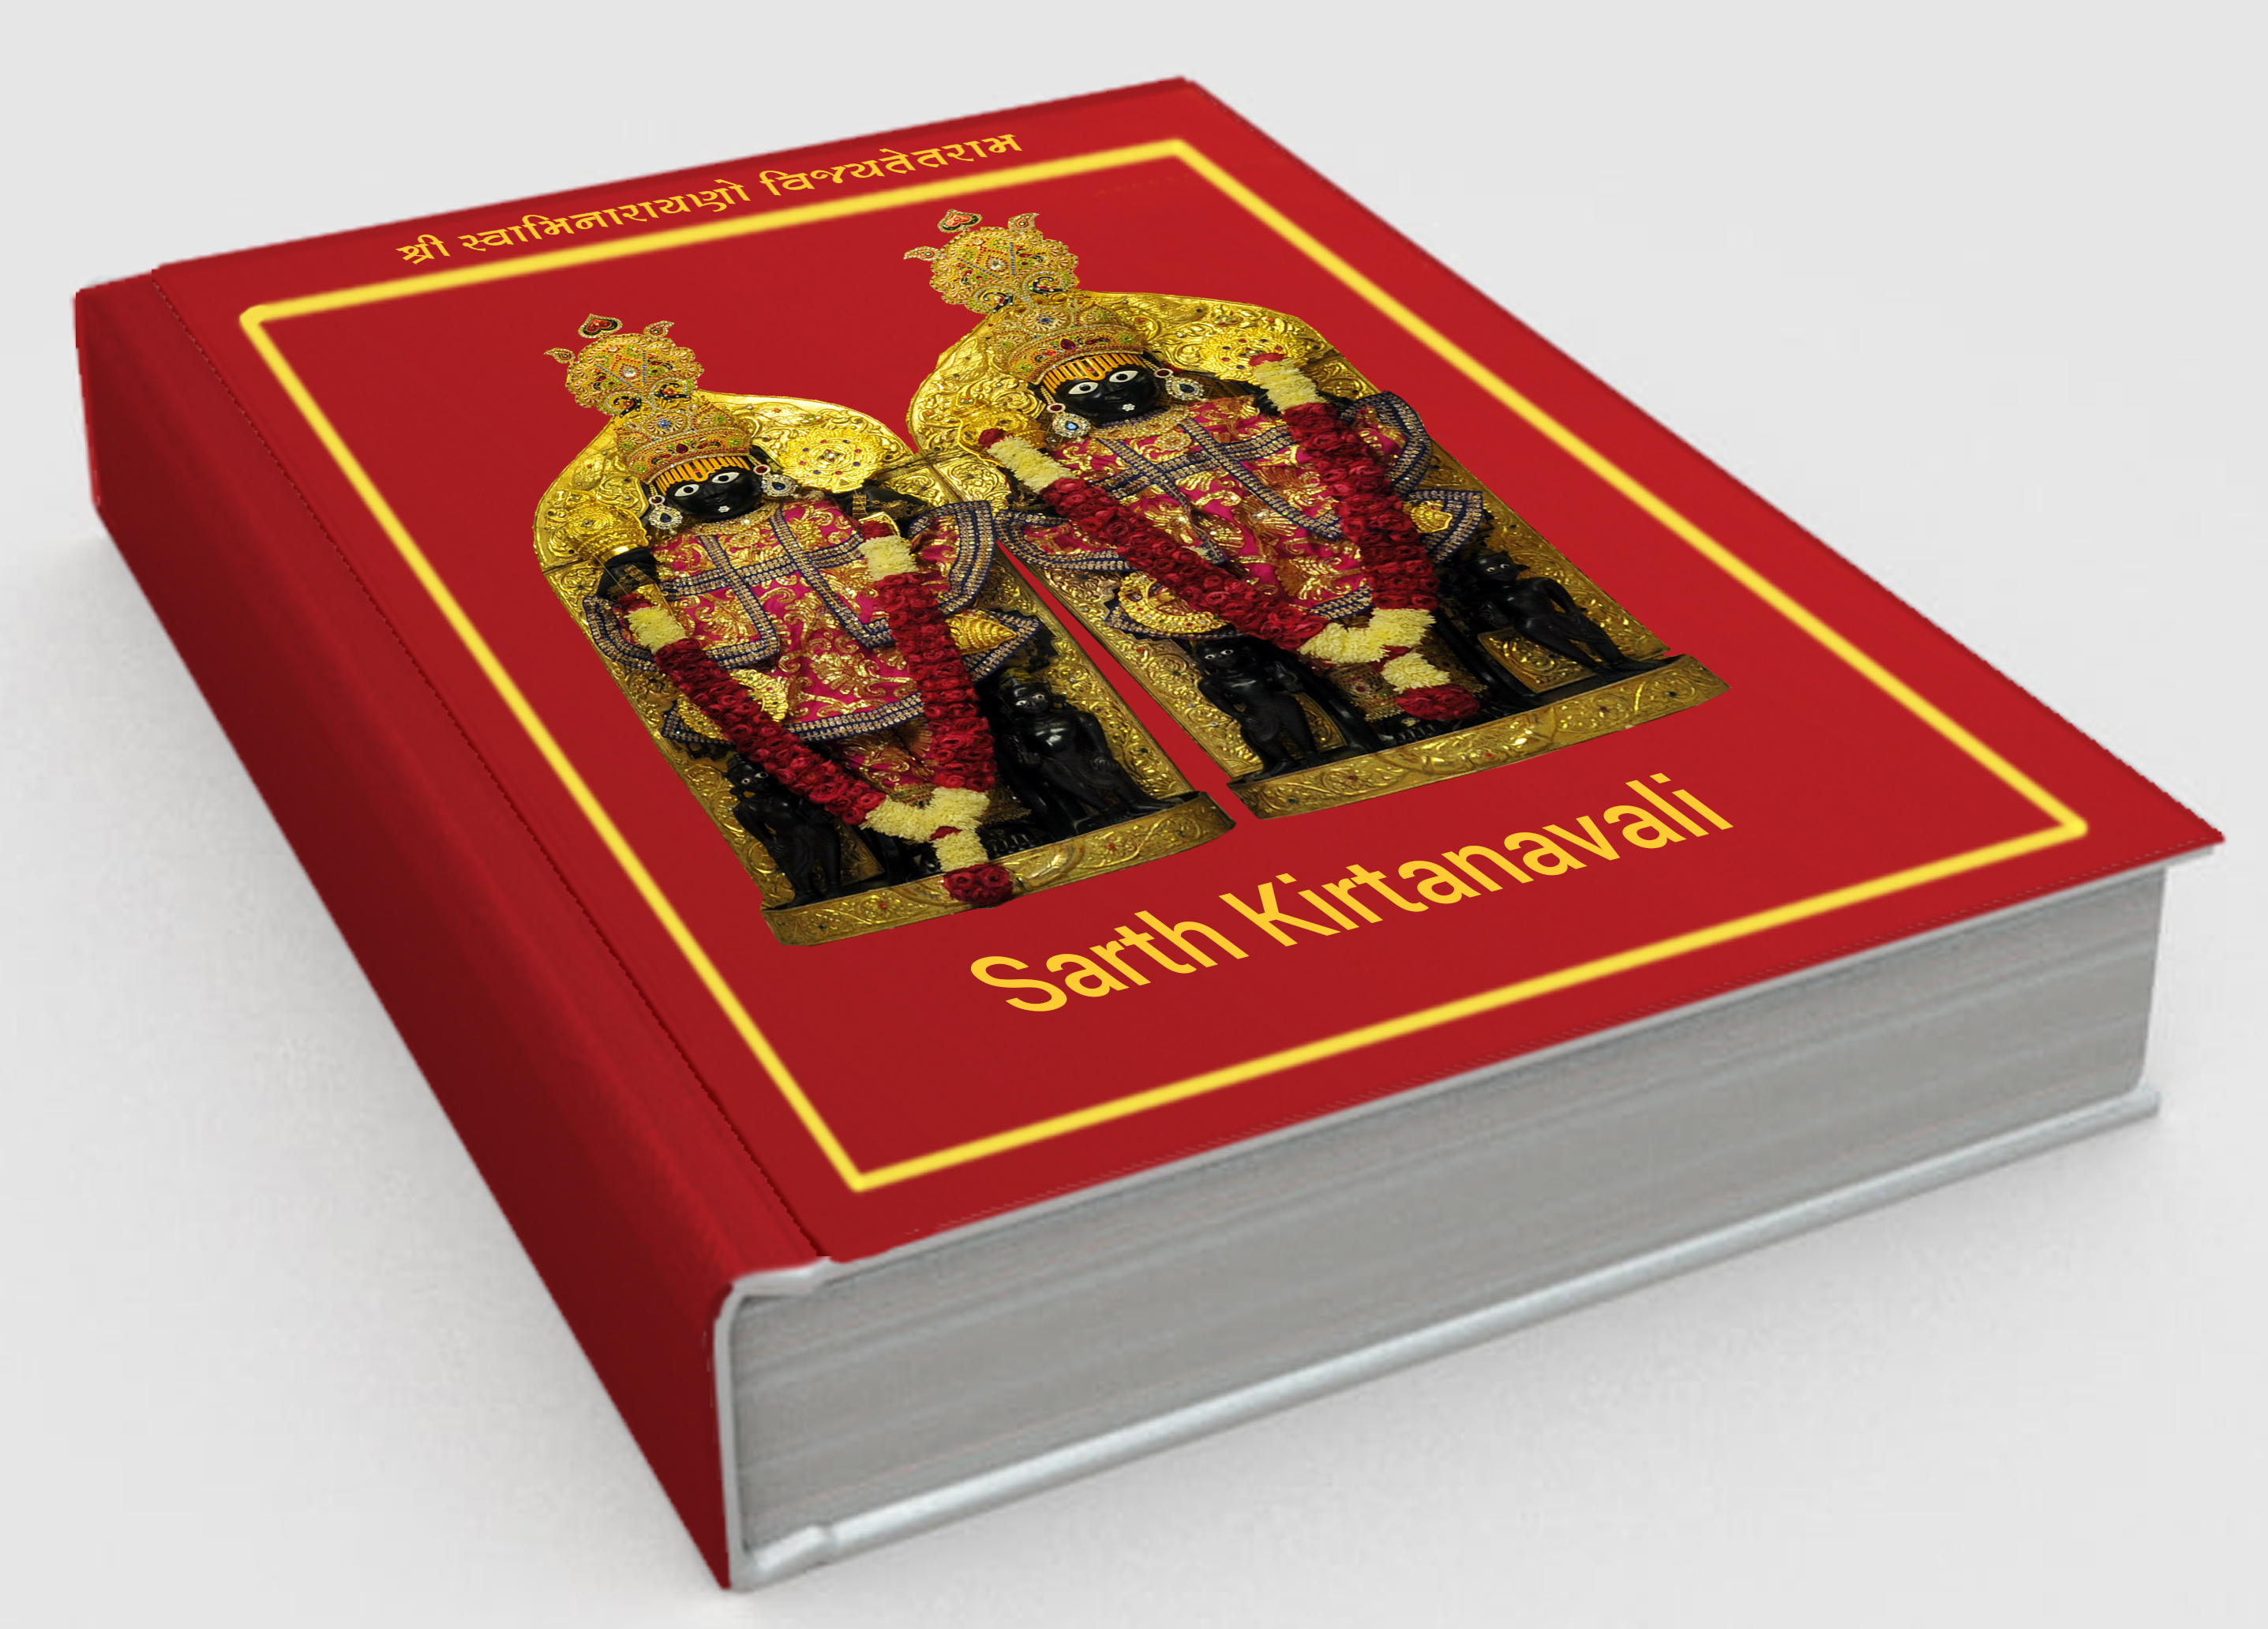 Cover of Sarth Kirtanavali